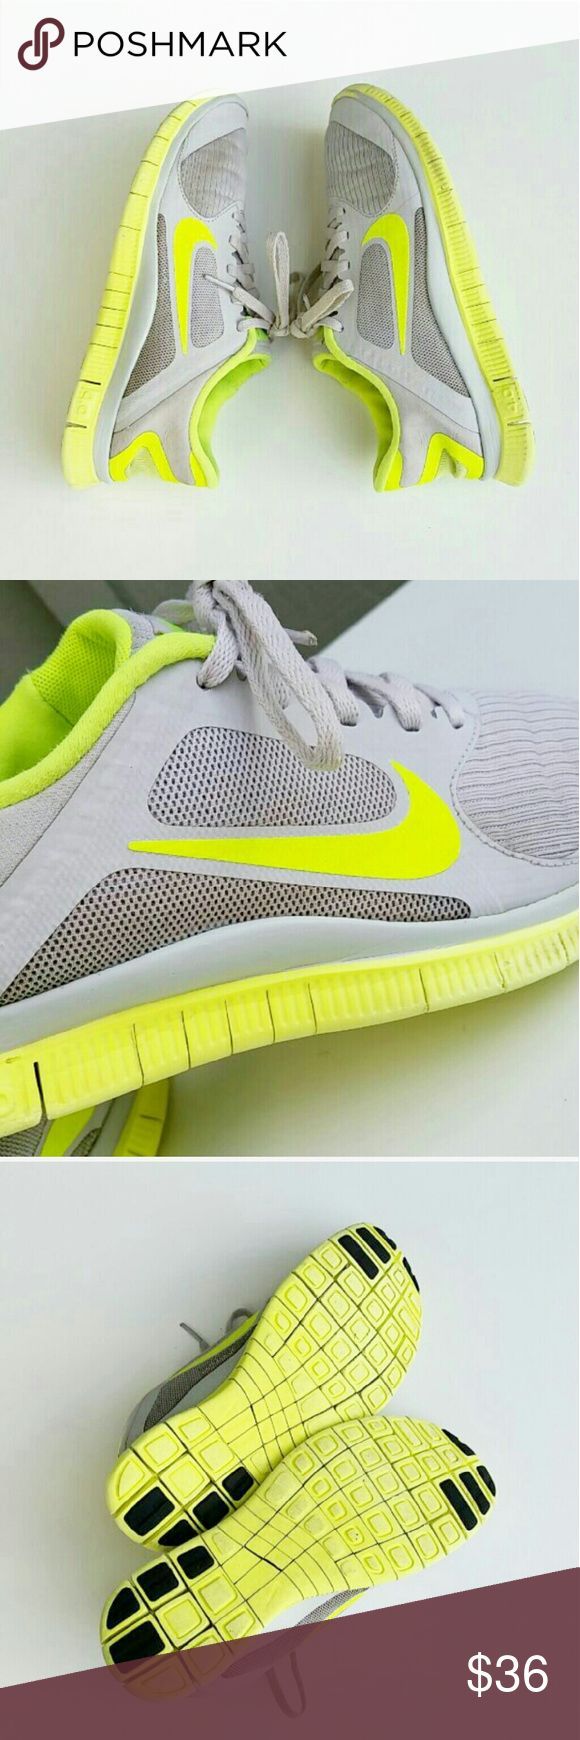 Women's Nike authletic shoes size 8.5 Women's Nike Free 4.0 authletic shoes. Very bright lime green color with light grey fabric and laces. Very comfortable for jogging,  running, exercising, sports! Pre owned condition but still in great shape.  Only in the front of the shoes the grey is starting to wash off to lime green. See the tips of the shoes on picture #1. Other then that.. there is no rips, holes, stains or anything like that. Very light weight. Size 8.5 Nike Shoes Athletic Shoes